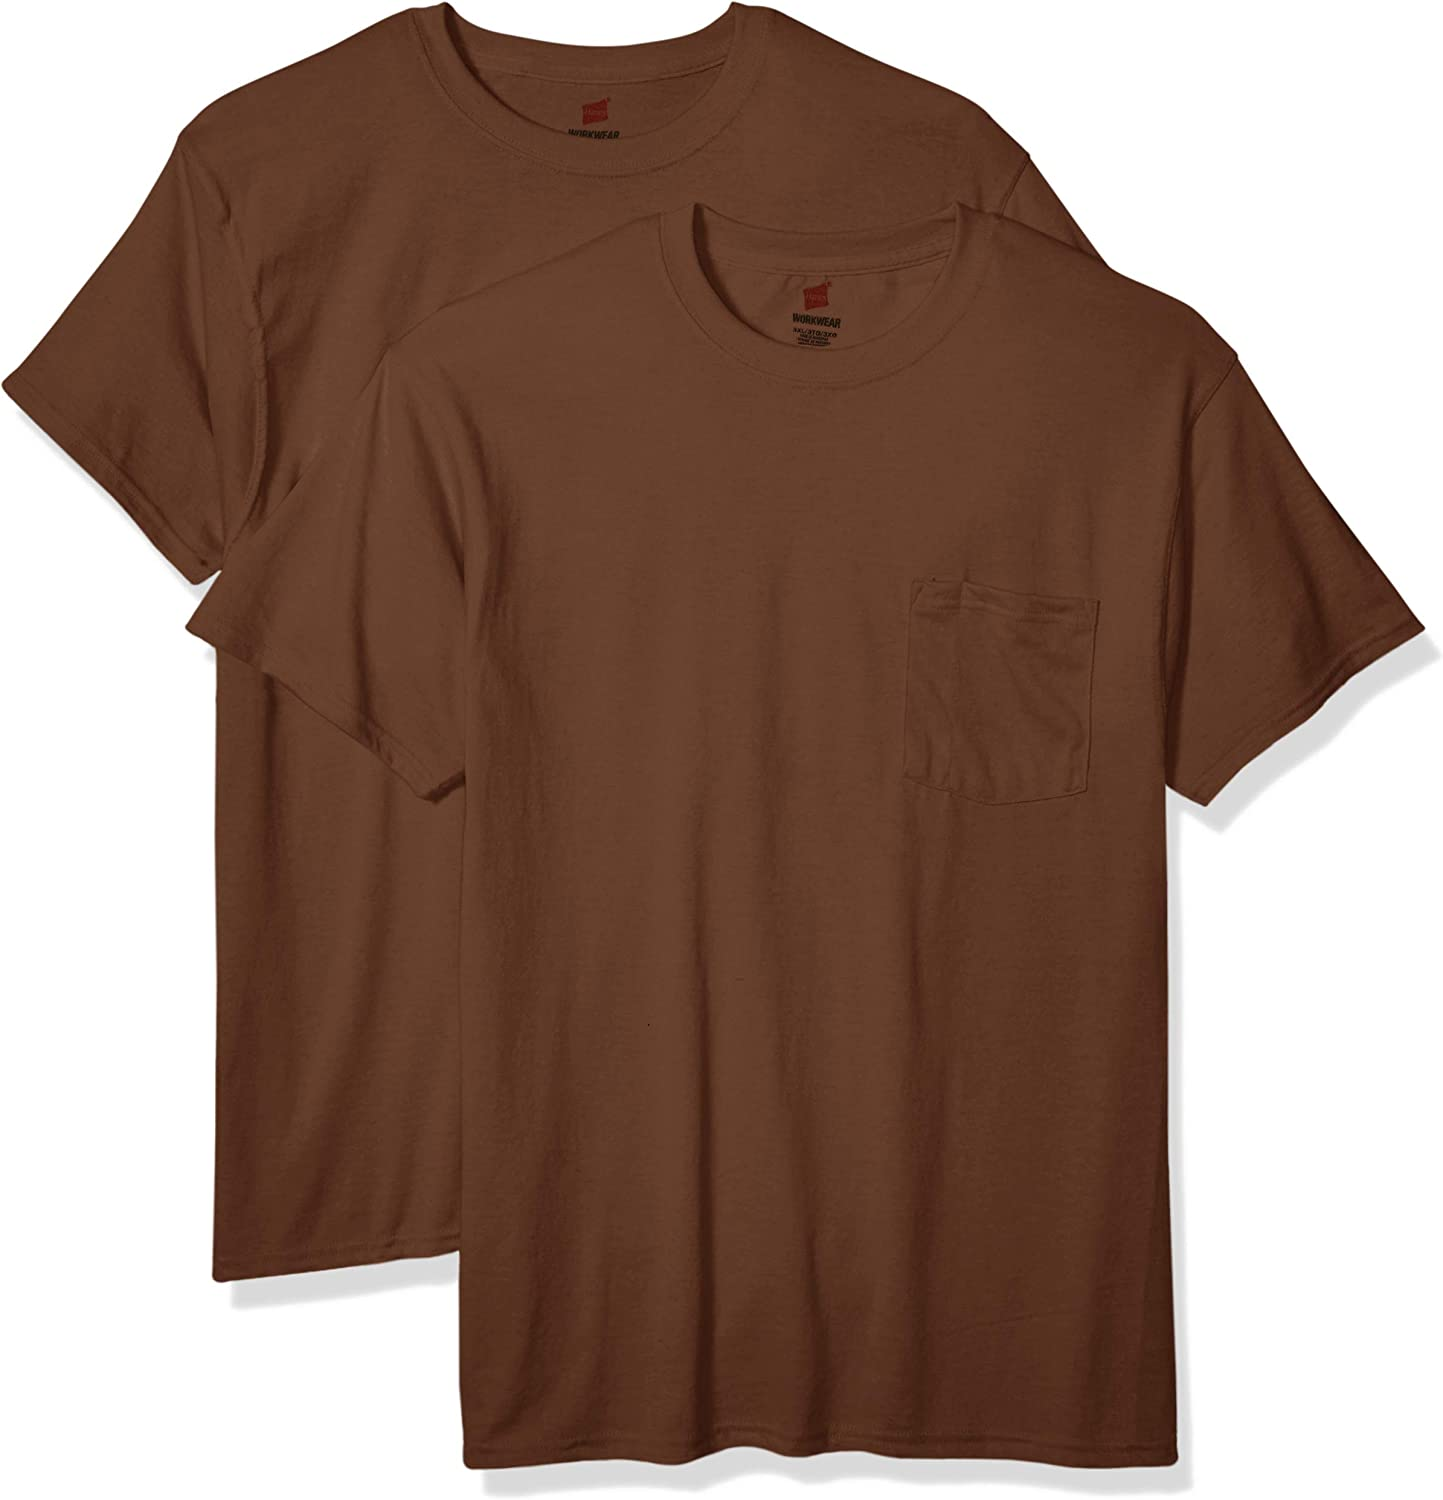 Hanes Men's Max 41% OFF Workwear Short 2-Pack Sleeve Cheap mail order specialty store Tee